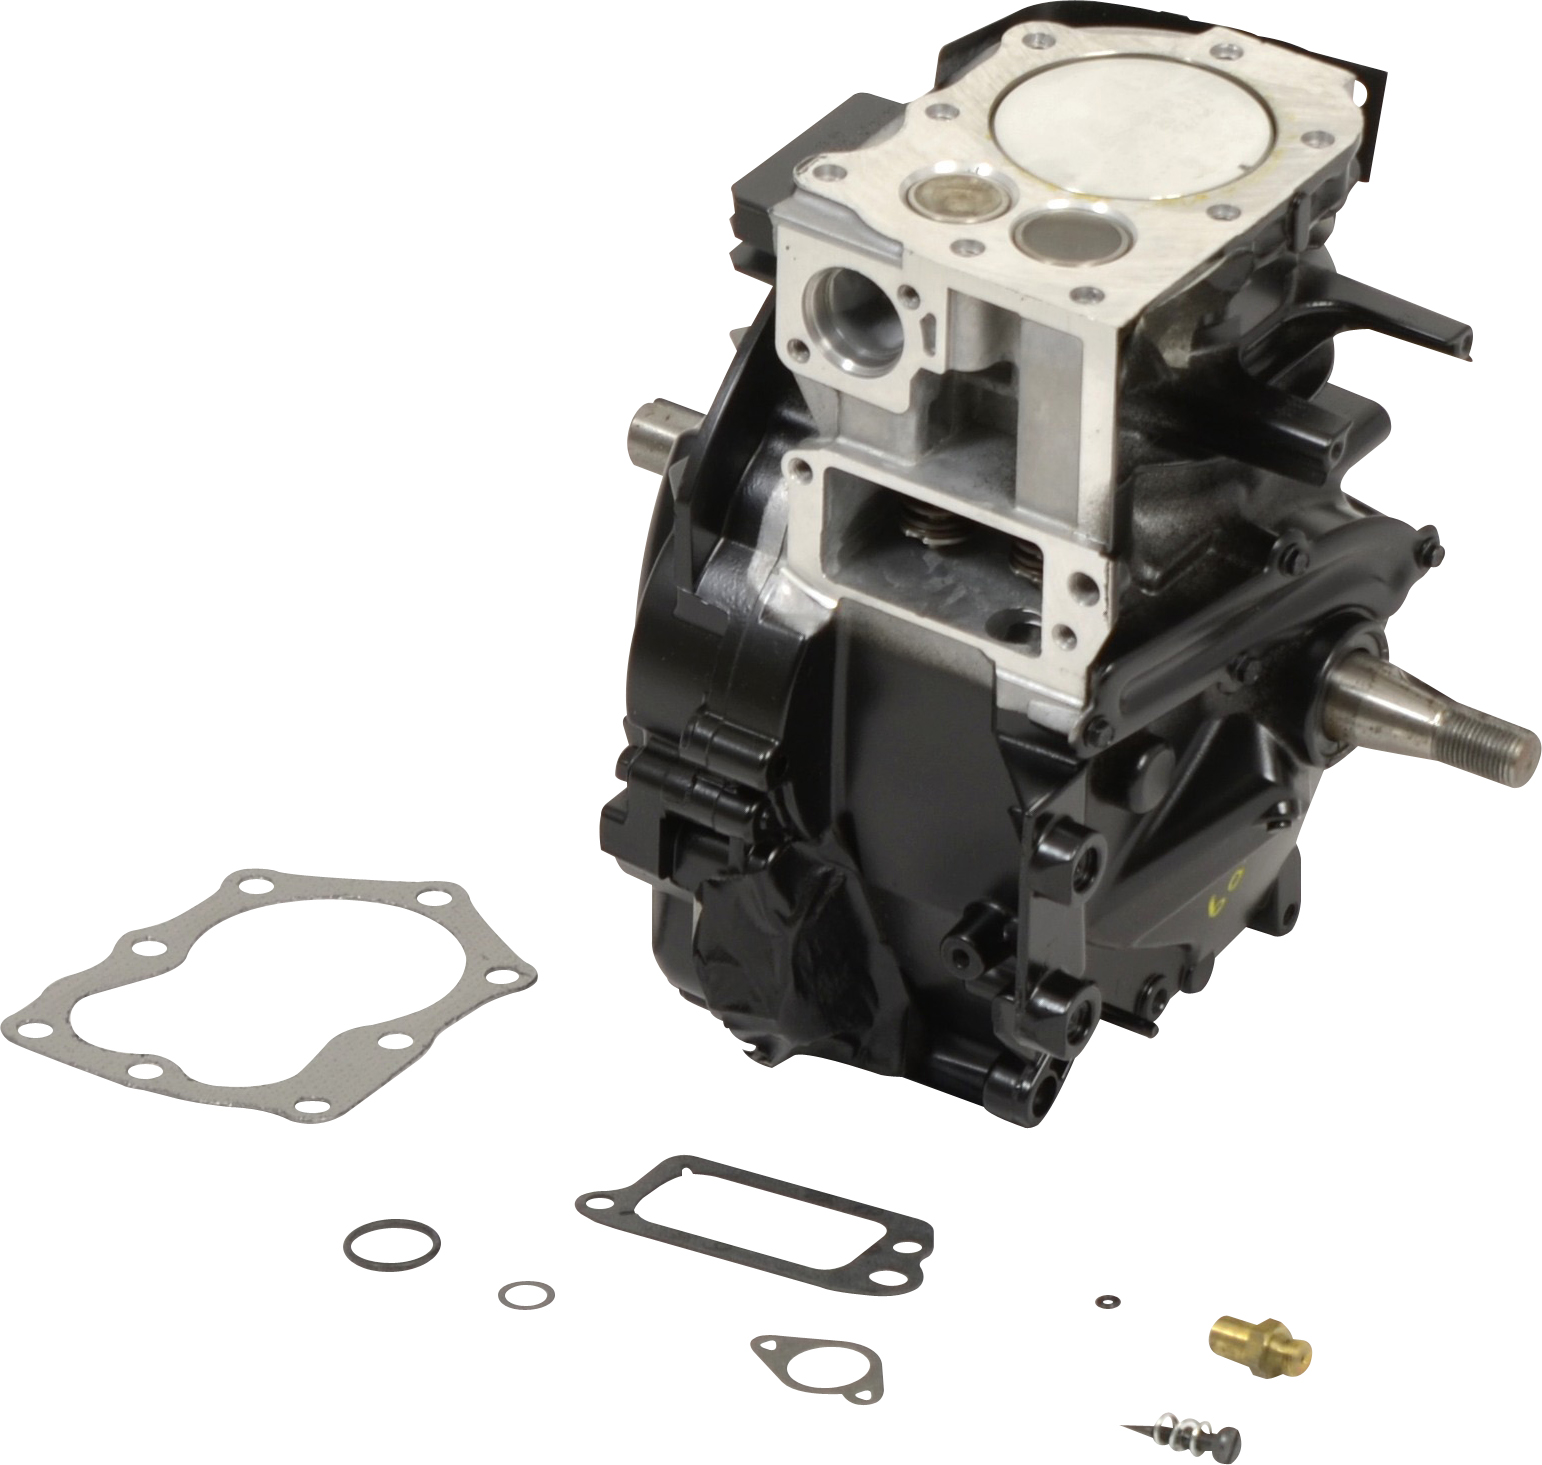 Briggs & Stratton Short block